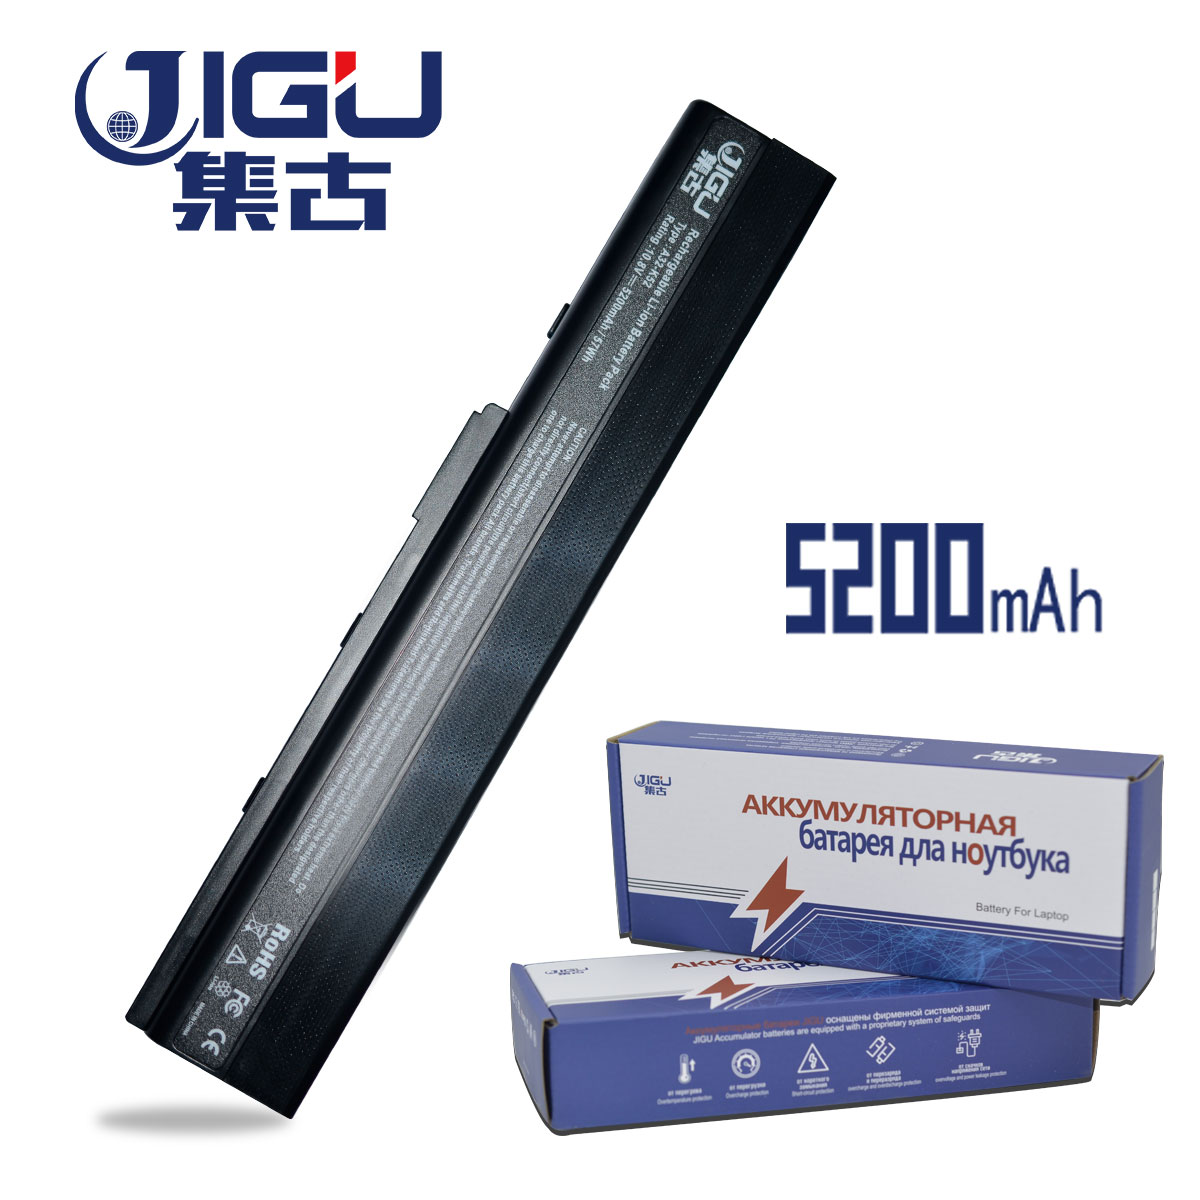 JIGU [Special Price] Laptop Battery For Asus A52 A52J K42 K42F K52F K52J Series,70-NXM1B2200Z A31-K52 A32-K52 A41-K52 A42-K52 for asus k52 x52j a52j k52j k52jr k52jt k52jb k52ju k52je k52d x52d a52d k52dy k52de k52dr audio usb io board interface board